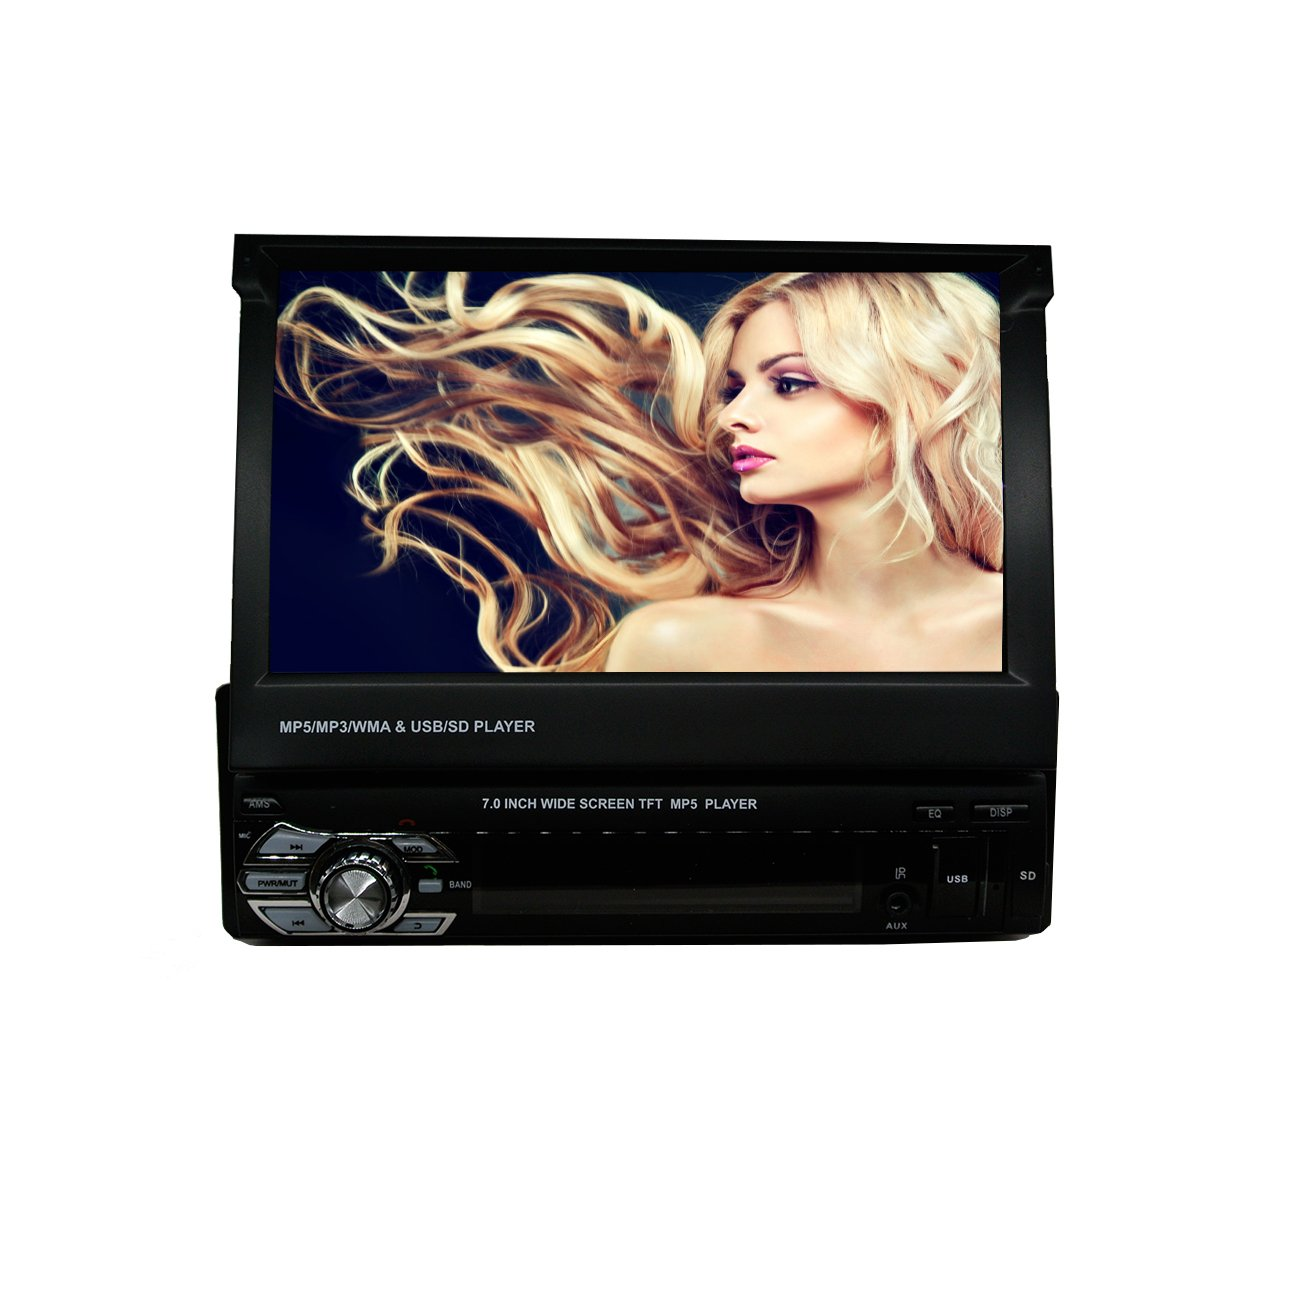 Ezonetronics Single Din 7 inch Slip Down Car Stereo,in Dash 1080P TFT/LCD Touch Screen Car FM Radio Receiver with USB/SD,MP4/MP5 Car Player Support Rear Camera for Universal (No DVD) CW9601